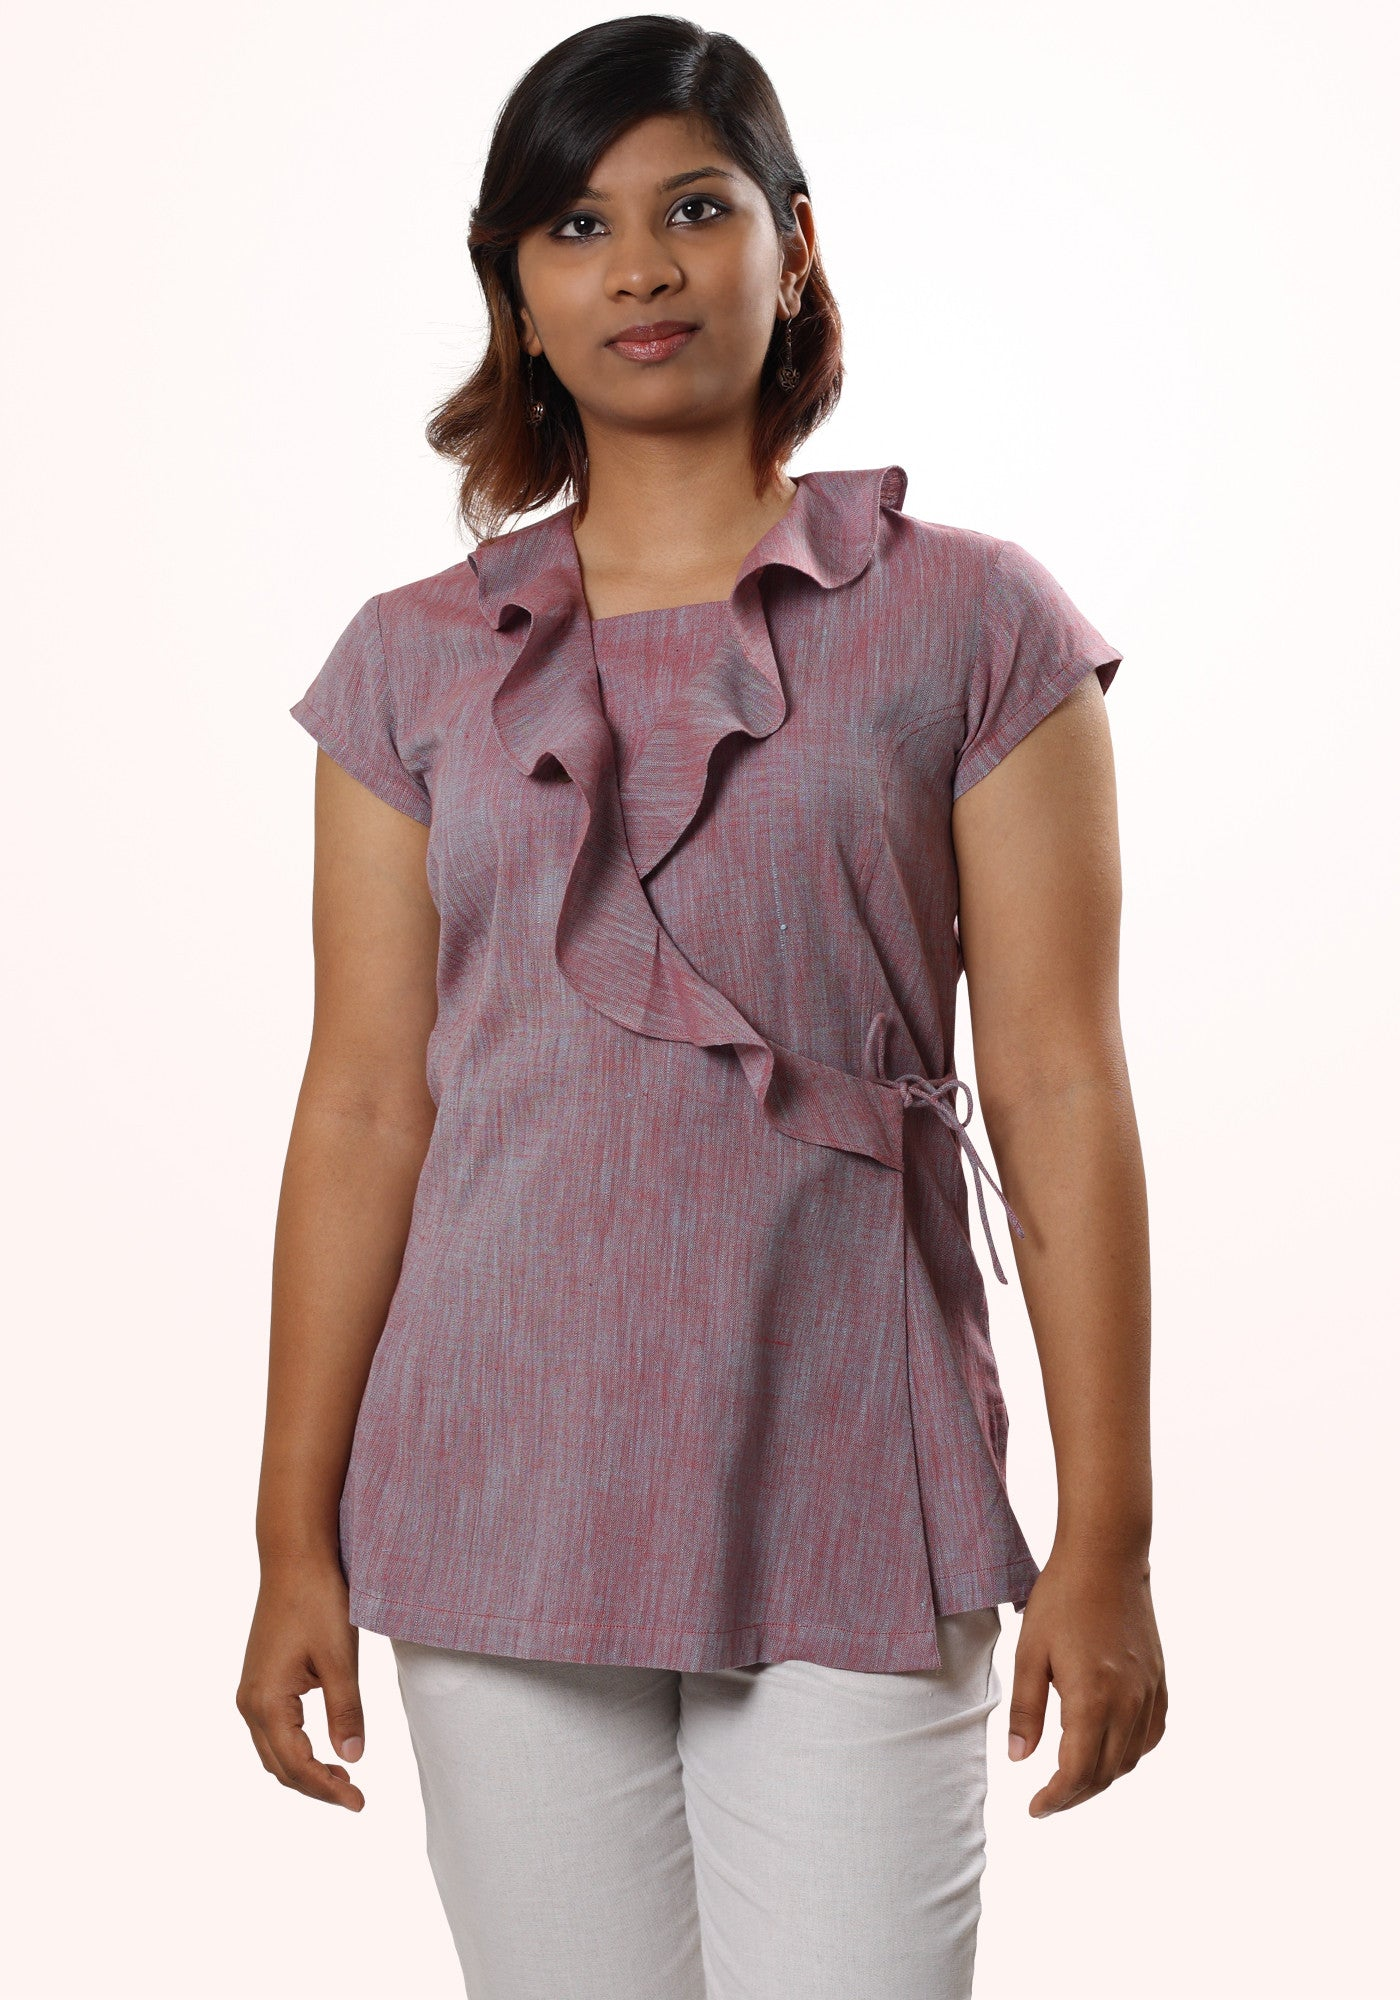 Asymmetric Ruffle Neck Top in Purple Cotton Khadi - MINC ecofashion